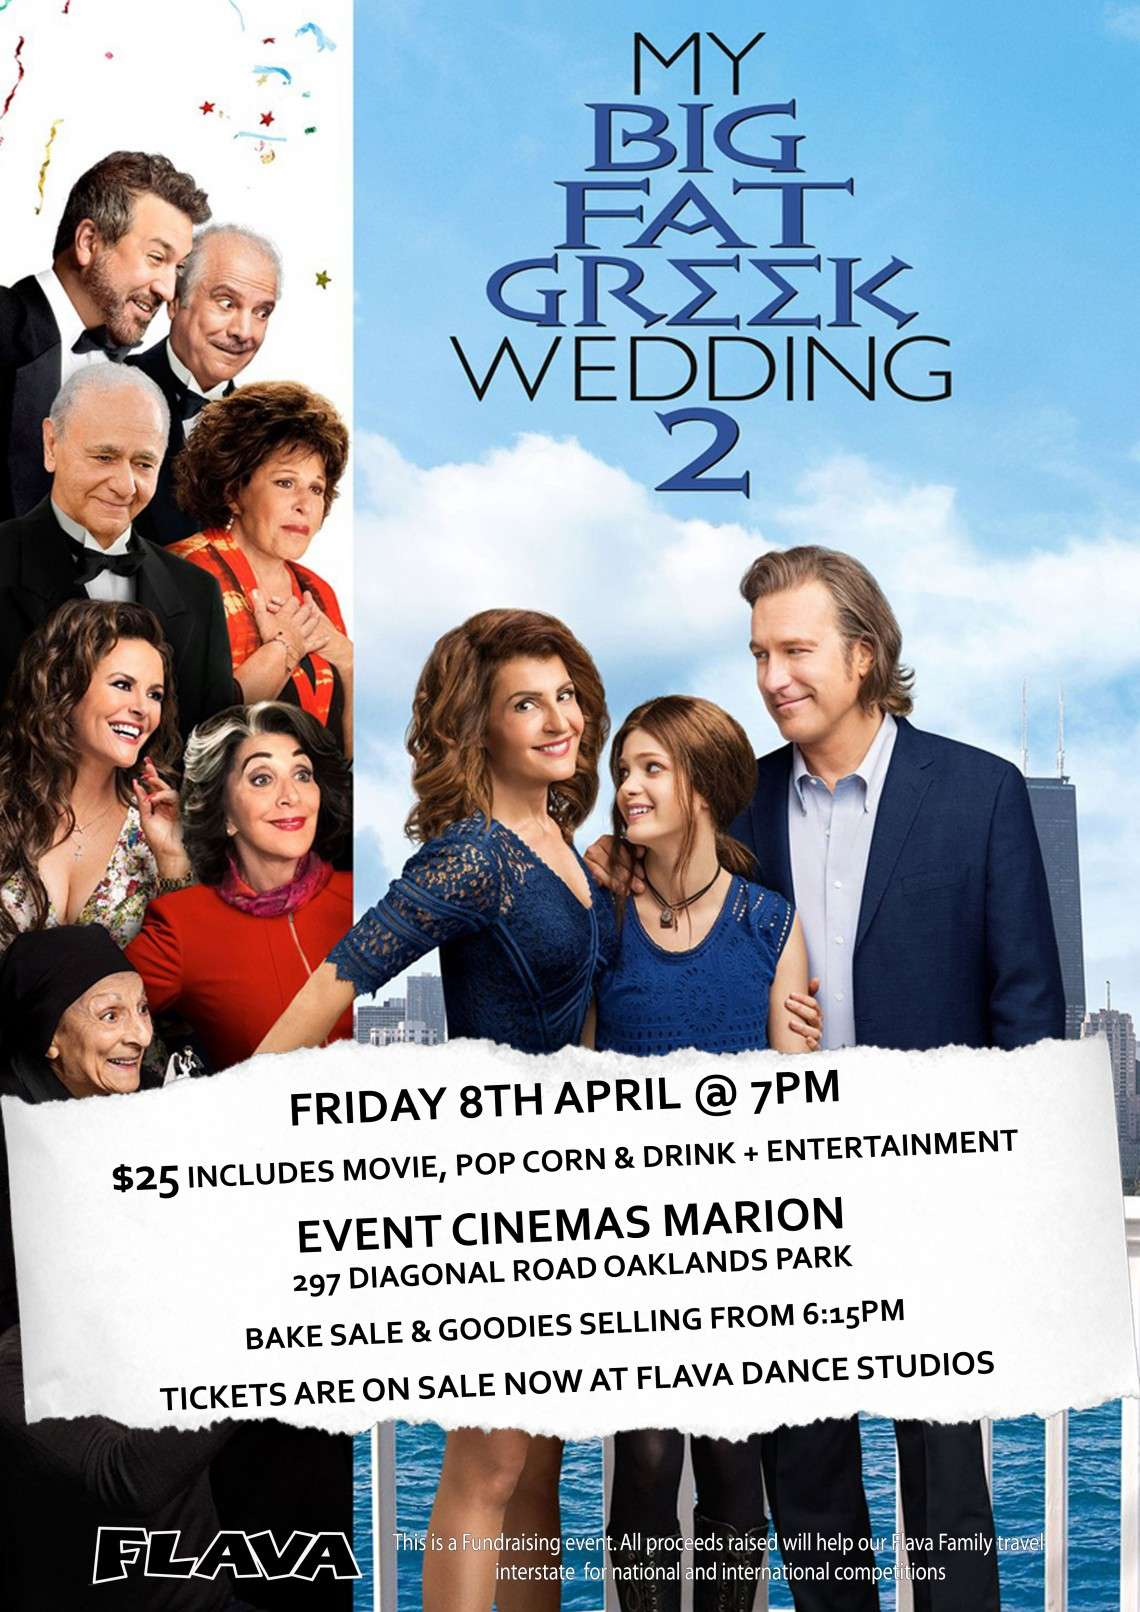 My Big Fat Greek Wedding 2.Movie Fundraiser My Big Fat Greek Wedding 2 Flava Dance